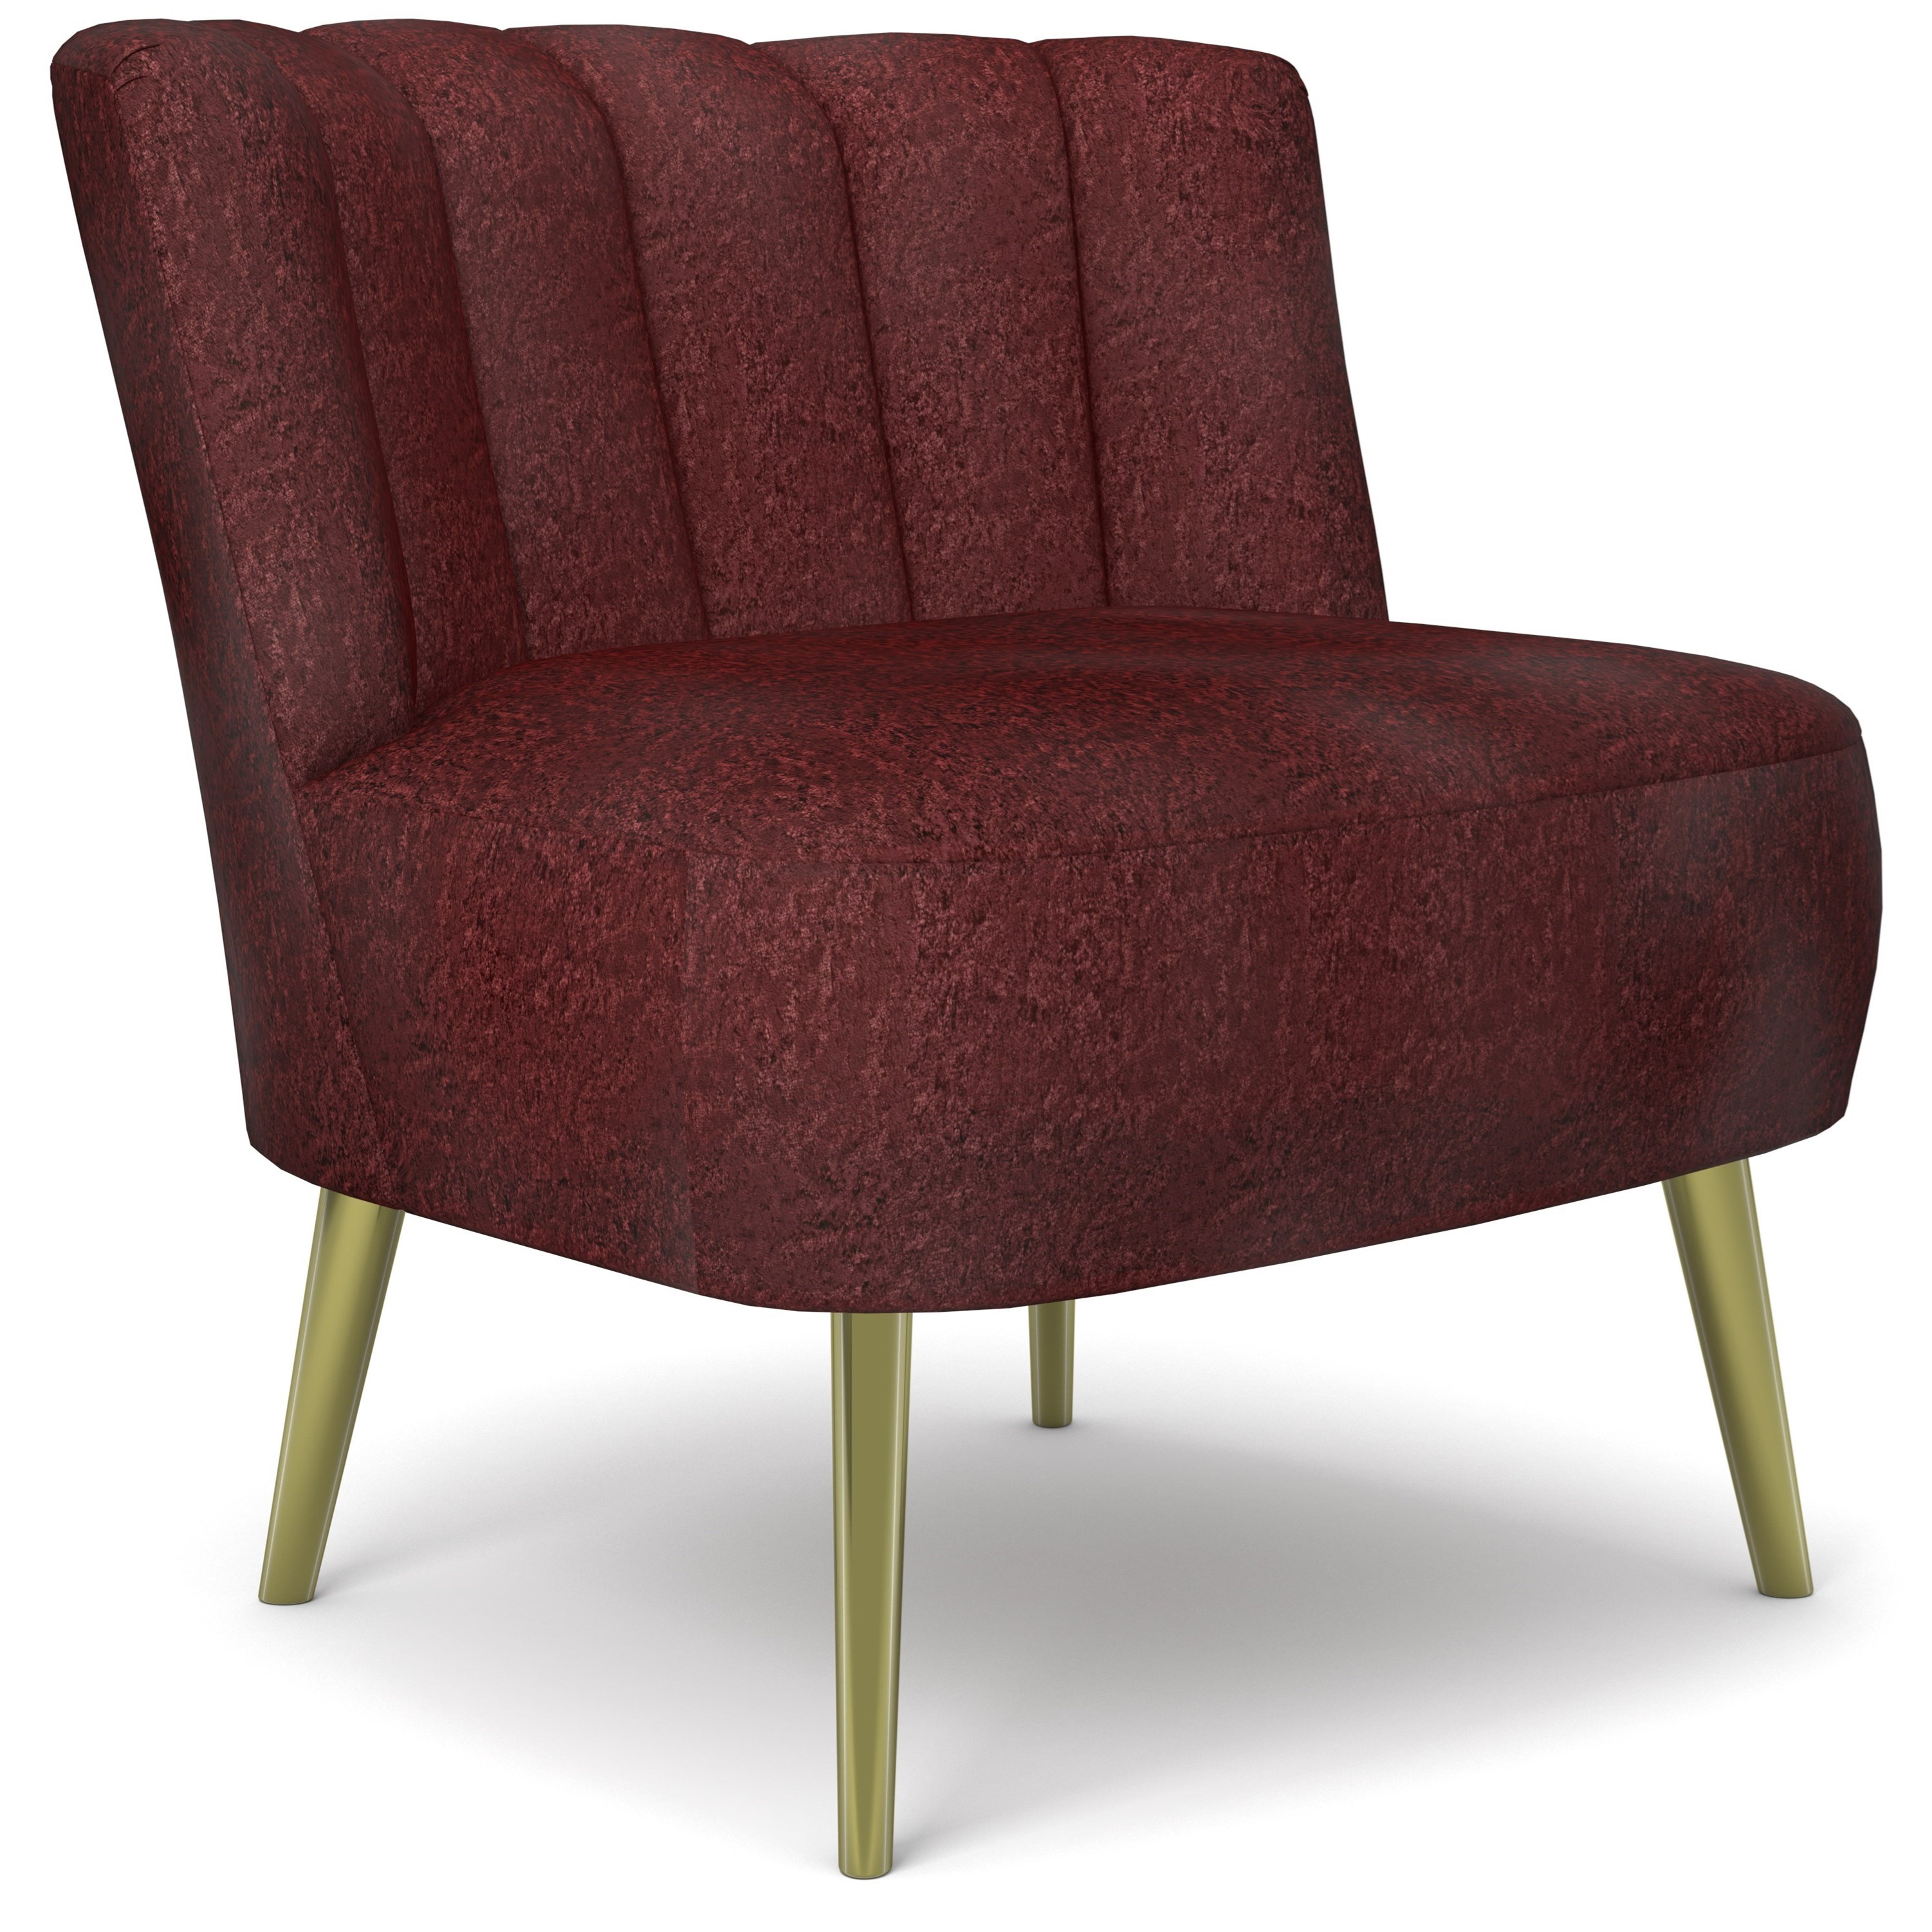 Best Xpress - Ameretta Accent Chair by Best Home Furnishings at Baer's Furniture